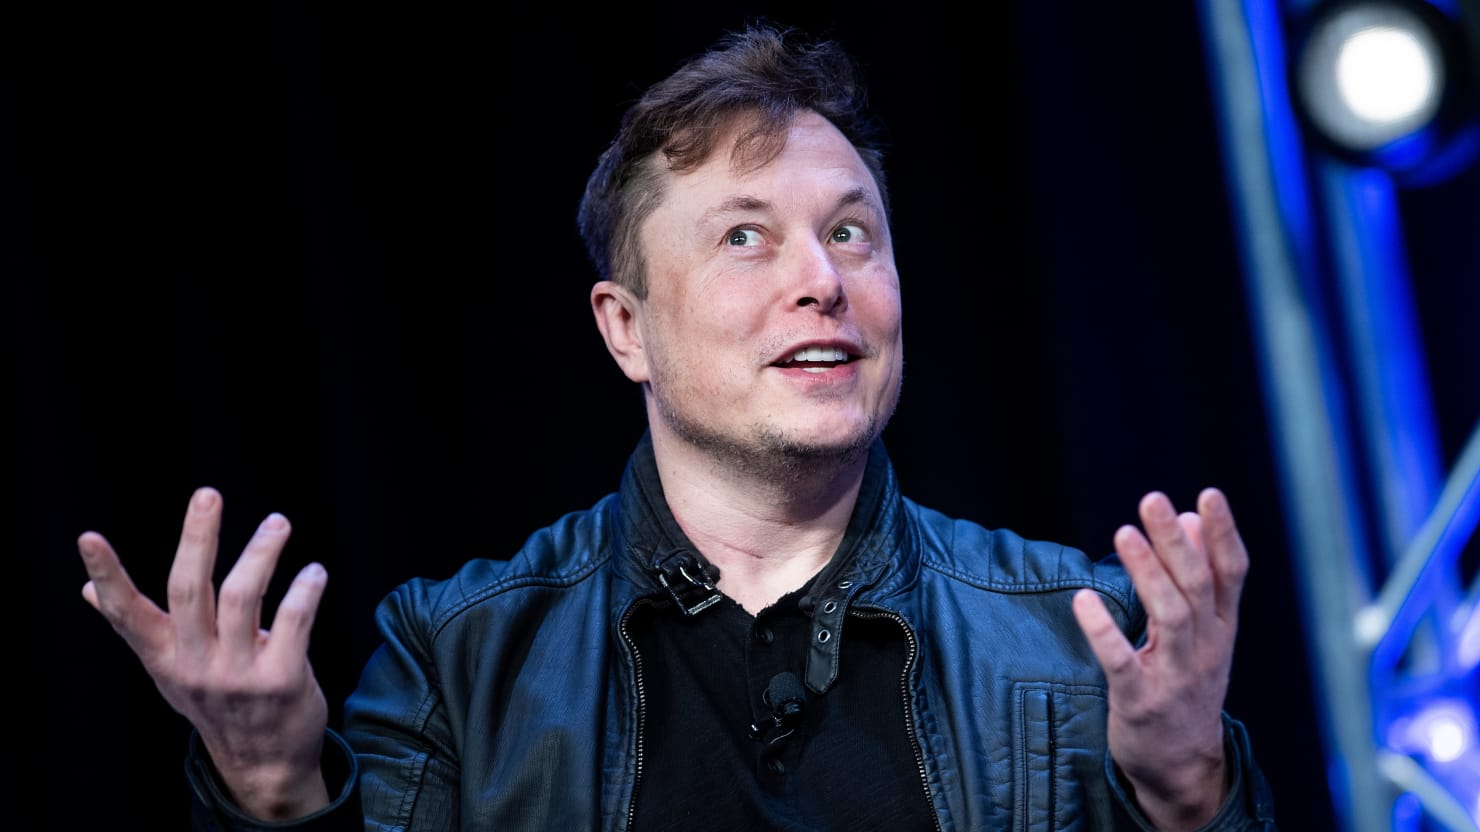 Elon Musk Reportedly Implants Pig Brains Successfully With New Tech, Plans for Humans Next